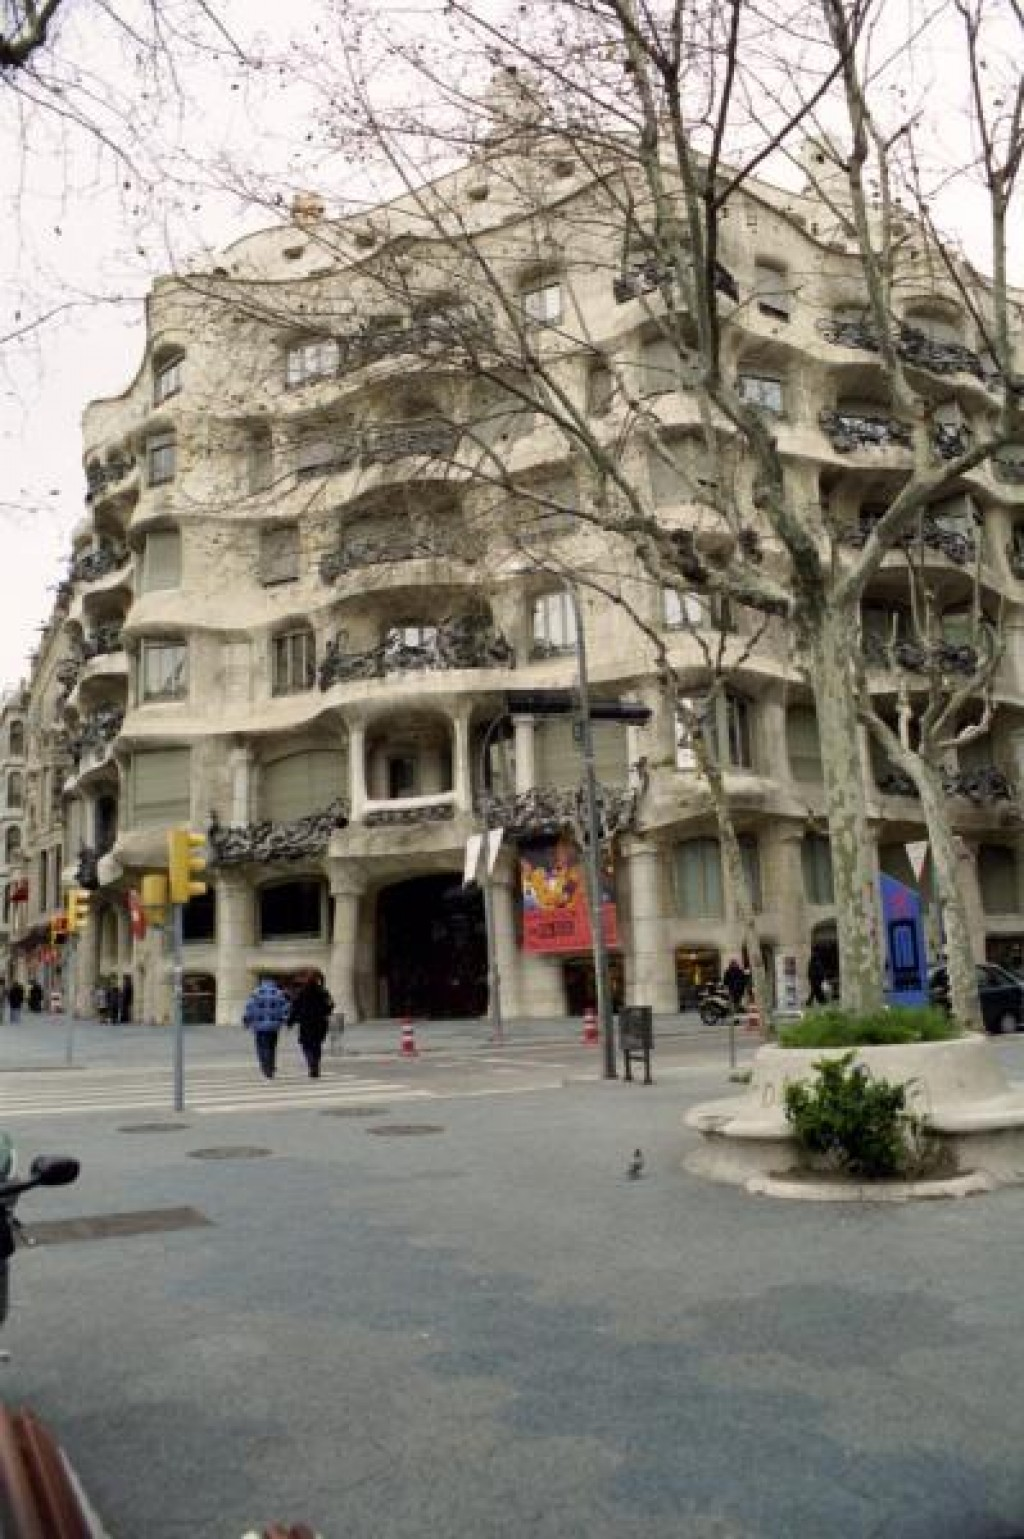 We visited the Casa Mila, which is an apartment building designed by Gaudi.  We took a tour.